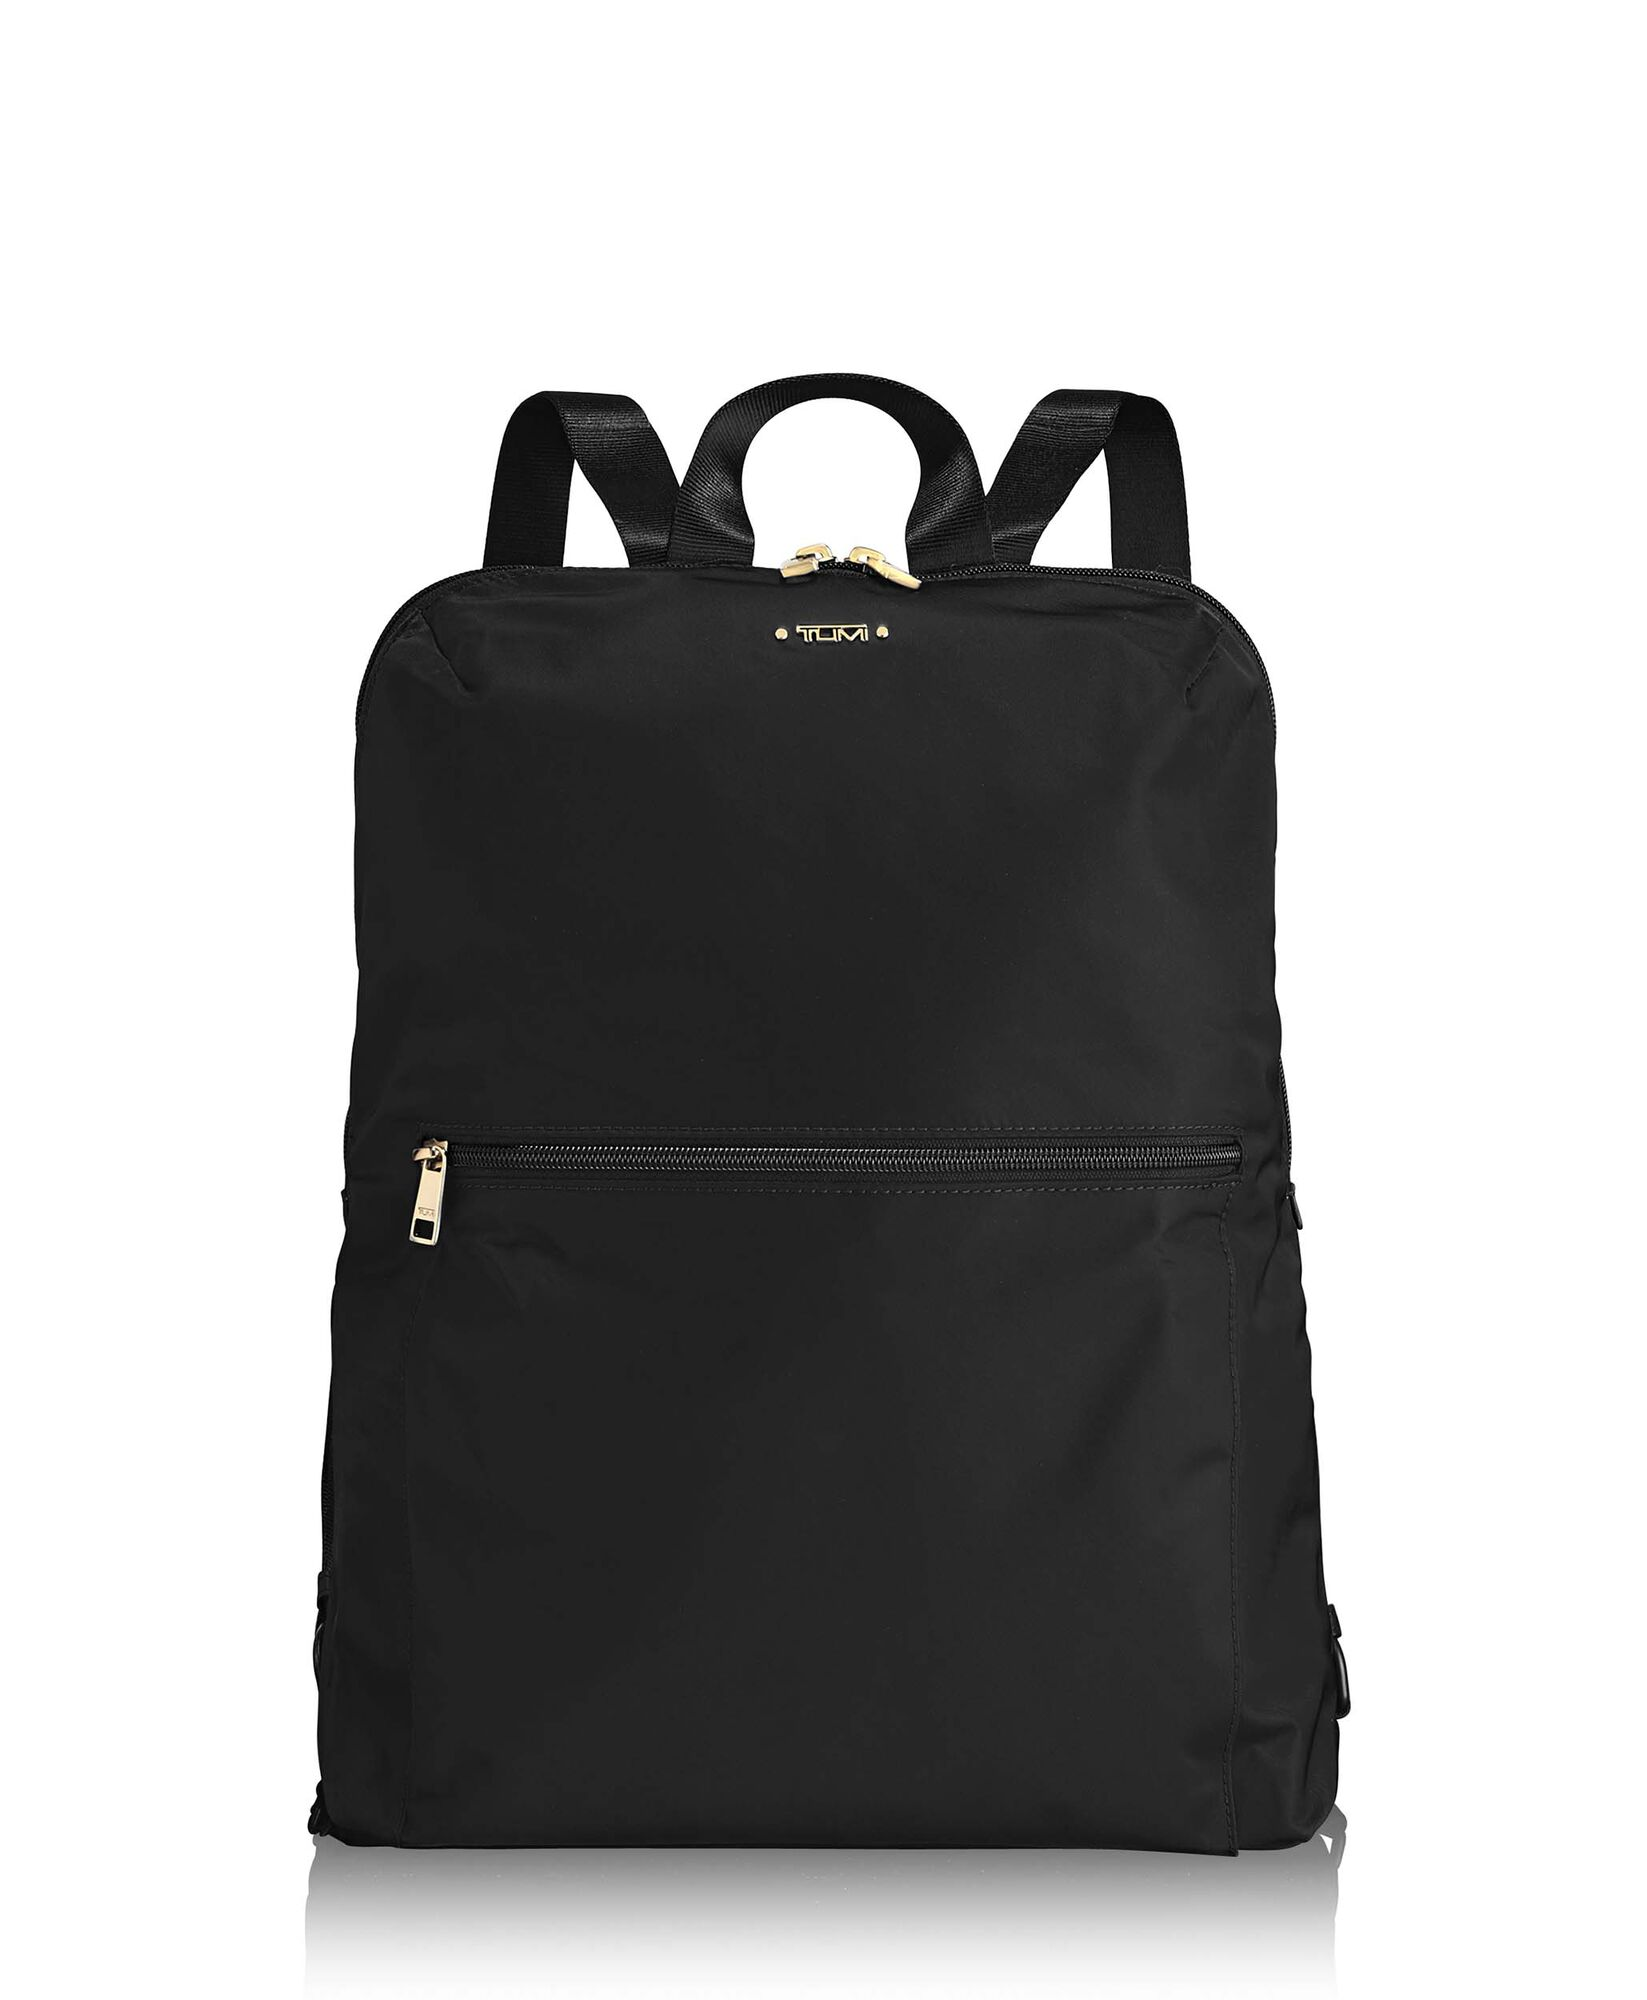 for whole family wholesale dealer amazing selection Just In Case® Travel Backpack Voyageur - Tumi